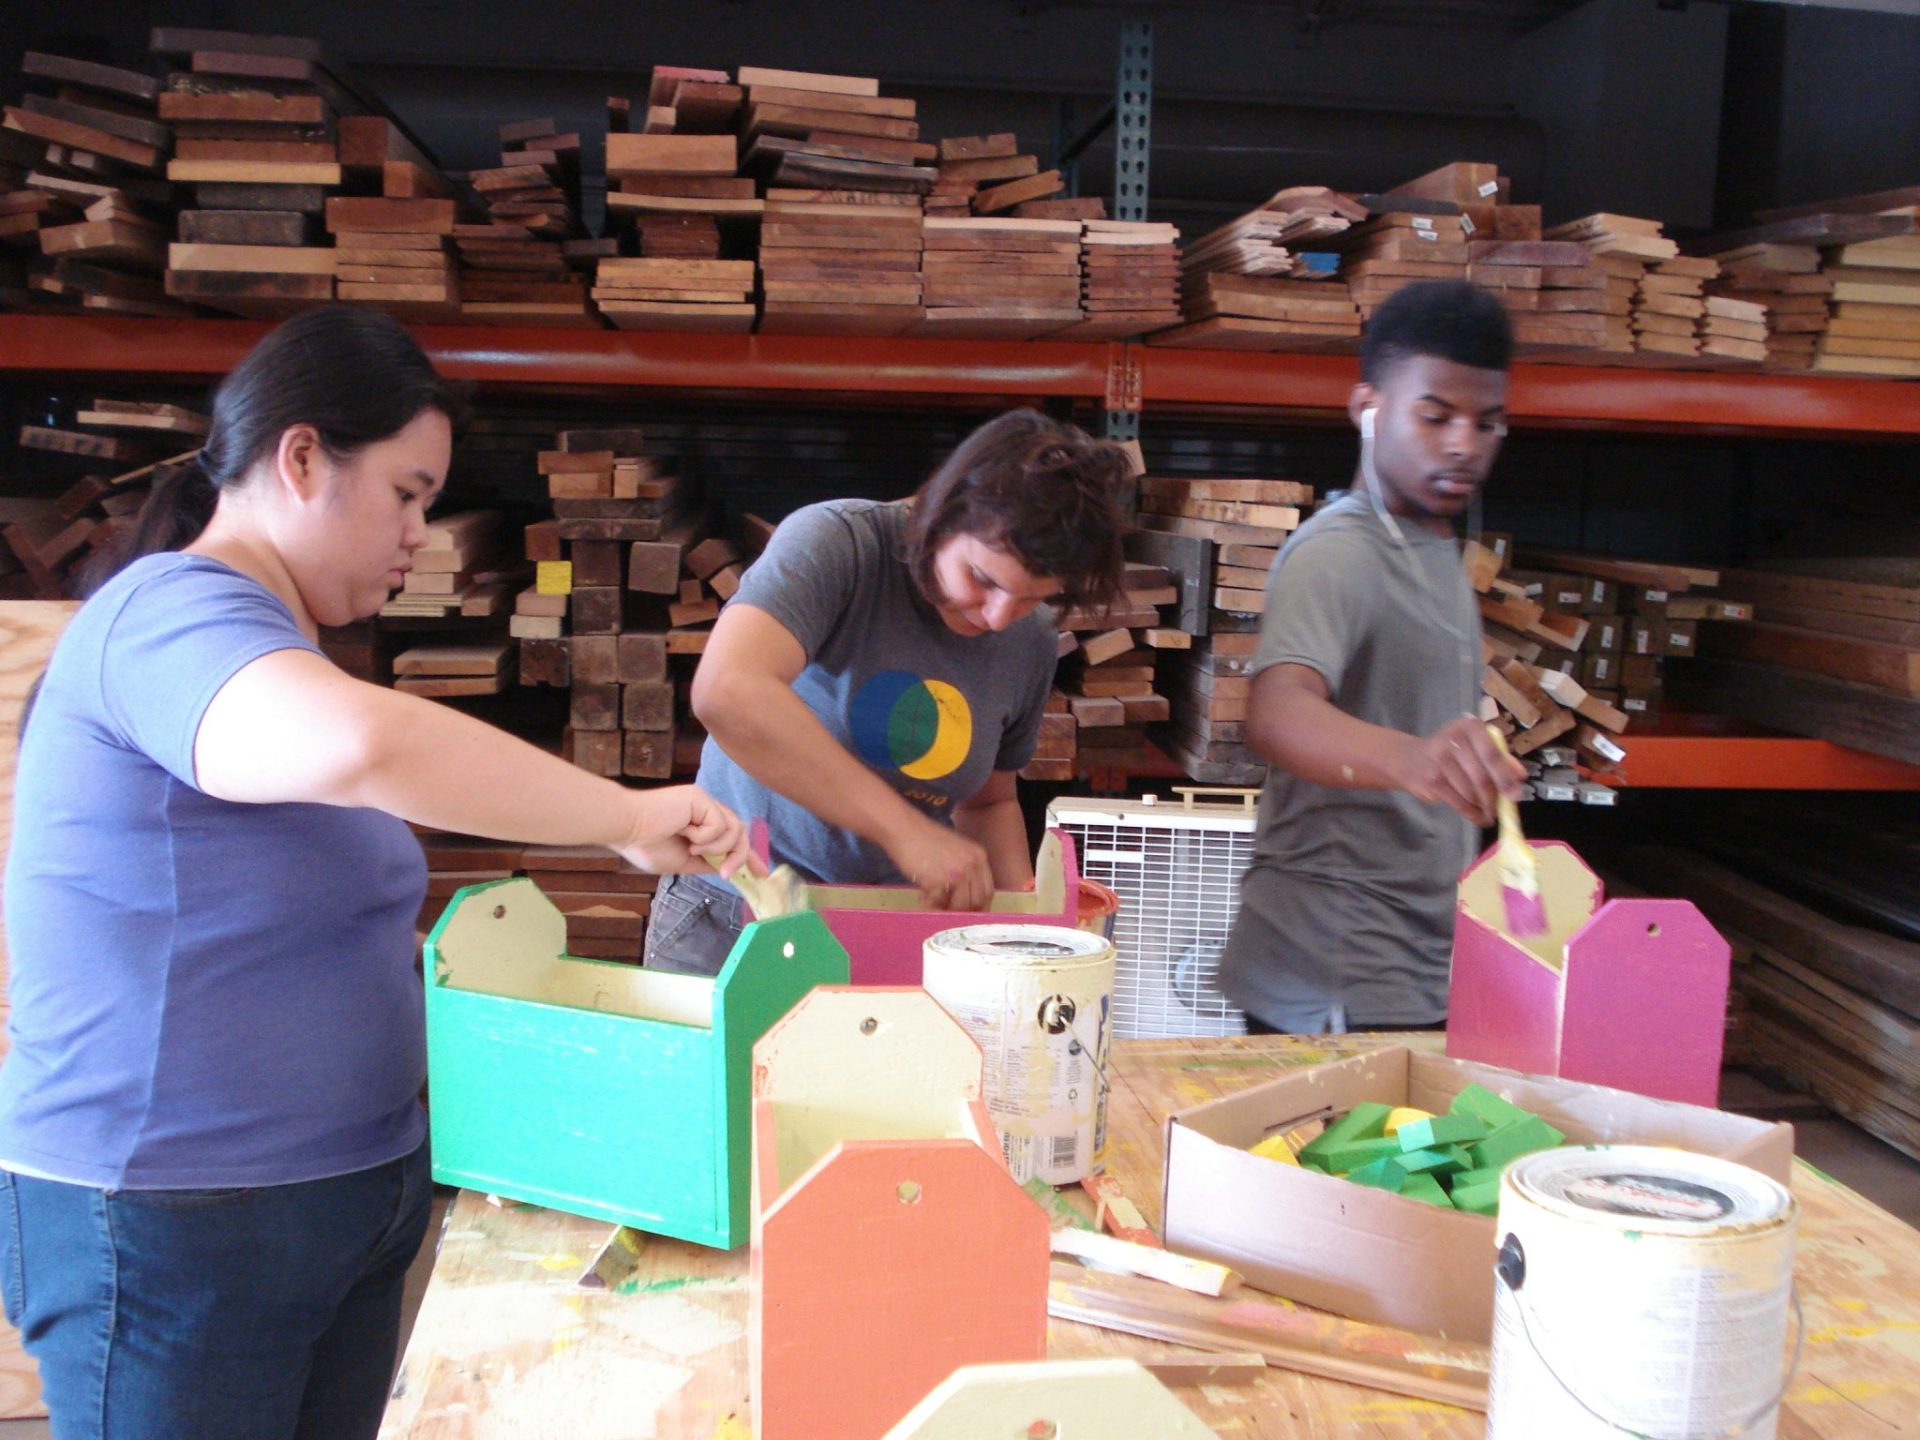 Painting block boxes